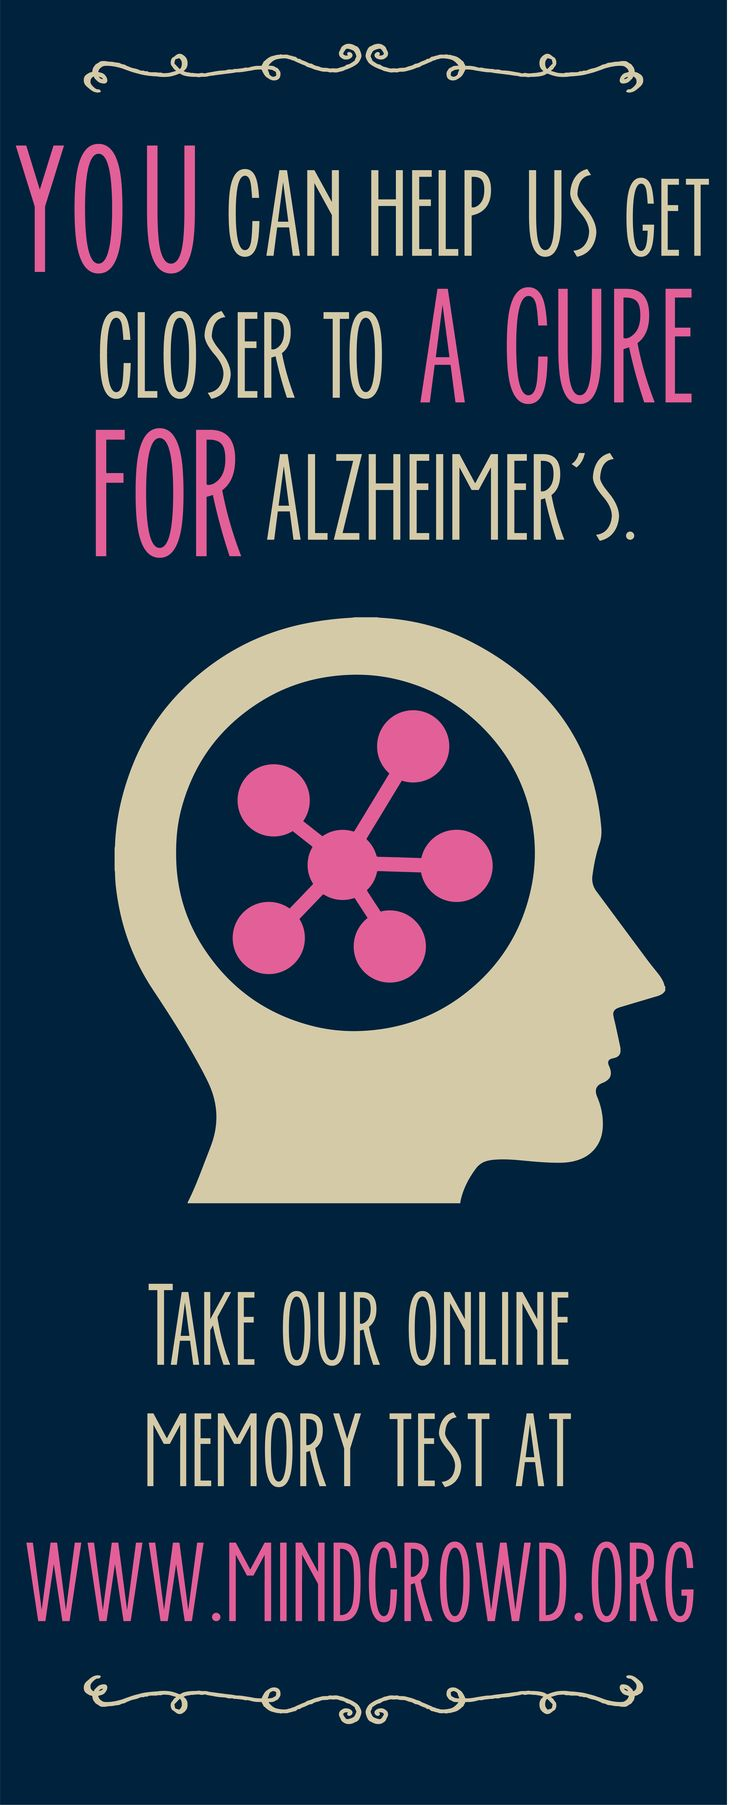 Want to help us get closer to a cure? Go to mindcrowd.org and take our ten minute online memory quiz. The results are used to fuel vital Alzheimer's research and you'll get information on how your brain stacks up against other test-takers! | #mindcrowd #tgen #alzheimers www.mindcrowd.org